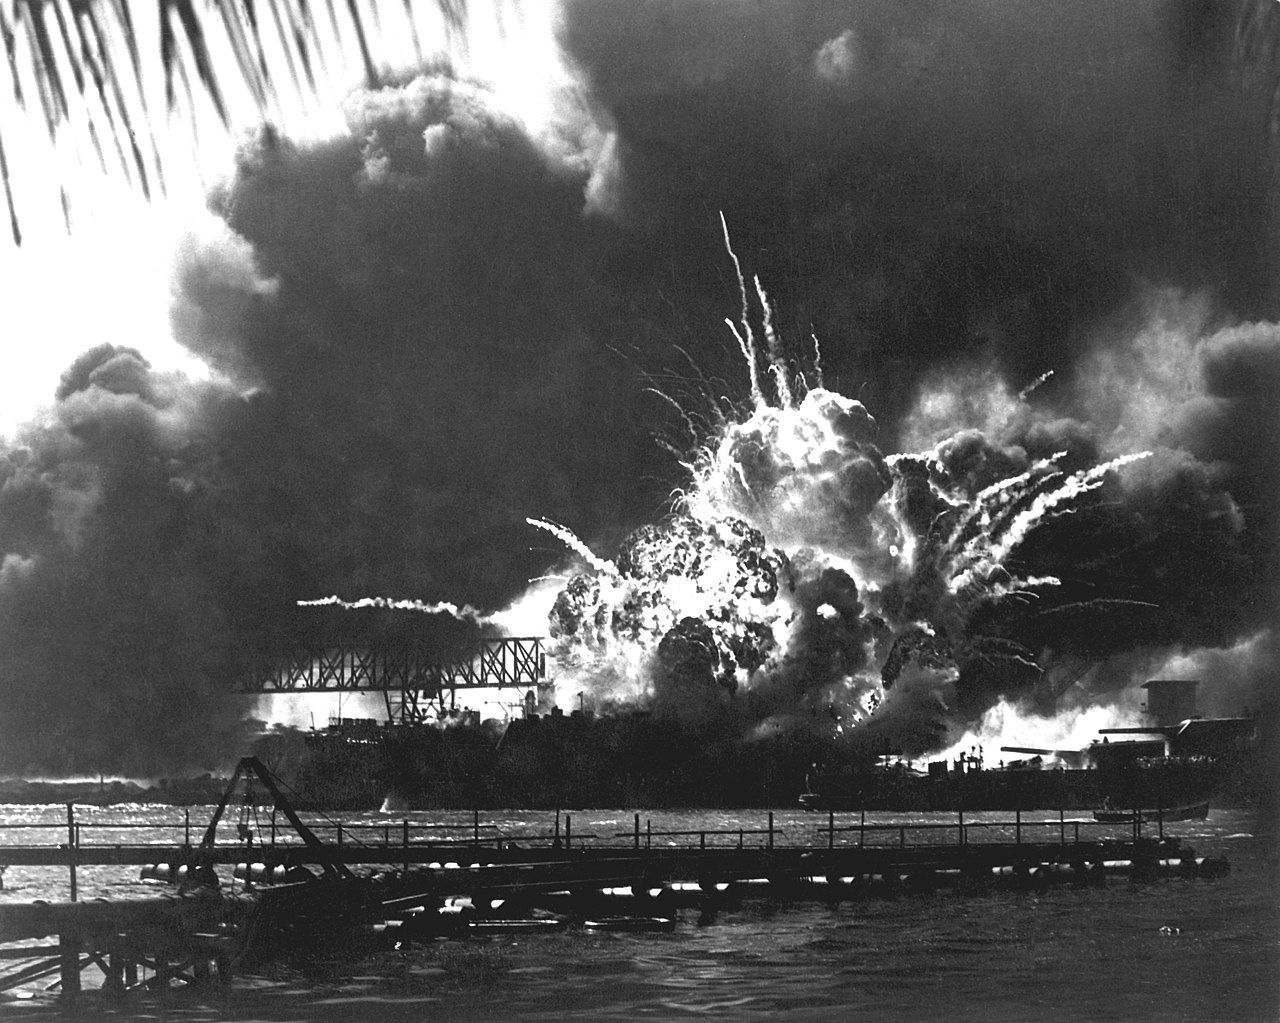 """an overview of the 1941 military disaster at pearl harbor On december 7, 1941, the sky over pearl harbor, on the hawaiian  pearl  harbor the homeport of the pacific fleet, a group of us navy vessels in the  pacific ocean  """"but it was also the biggest public relations (pr) disaster any  nation  us navy: overview of the pearl harbor attack, 7 december 1941."""